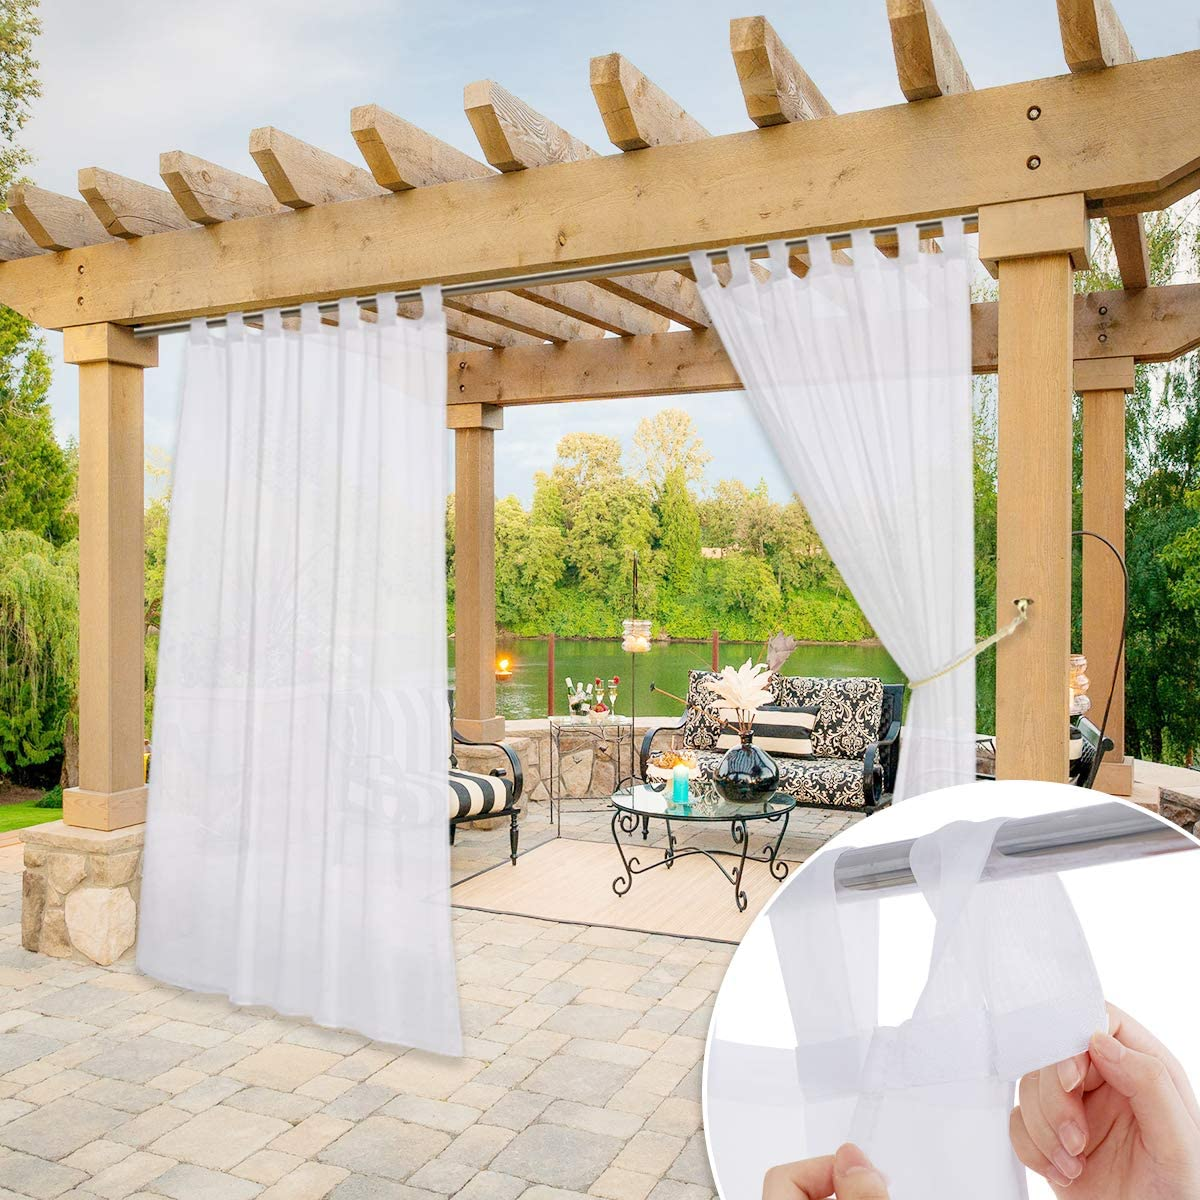 W54 x L96 NICETOWN Outdoor Patio Curtain Waterproof Detachable Sticky Tab Top Indoor Outdoor Sheer Voile Drape for Pergola with Rope Tieback White 1 Panel